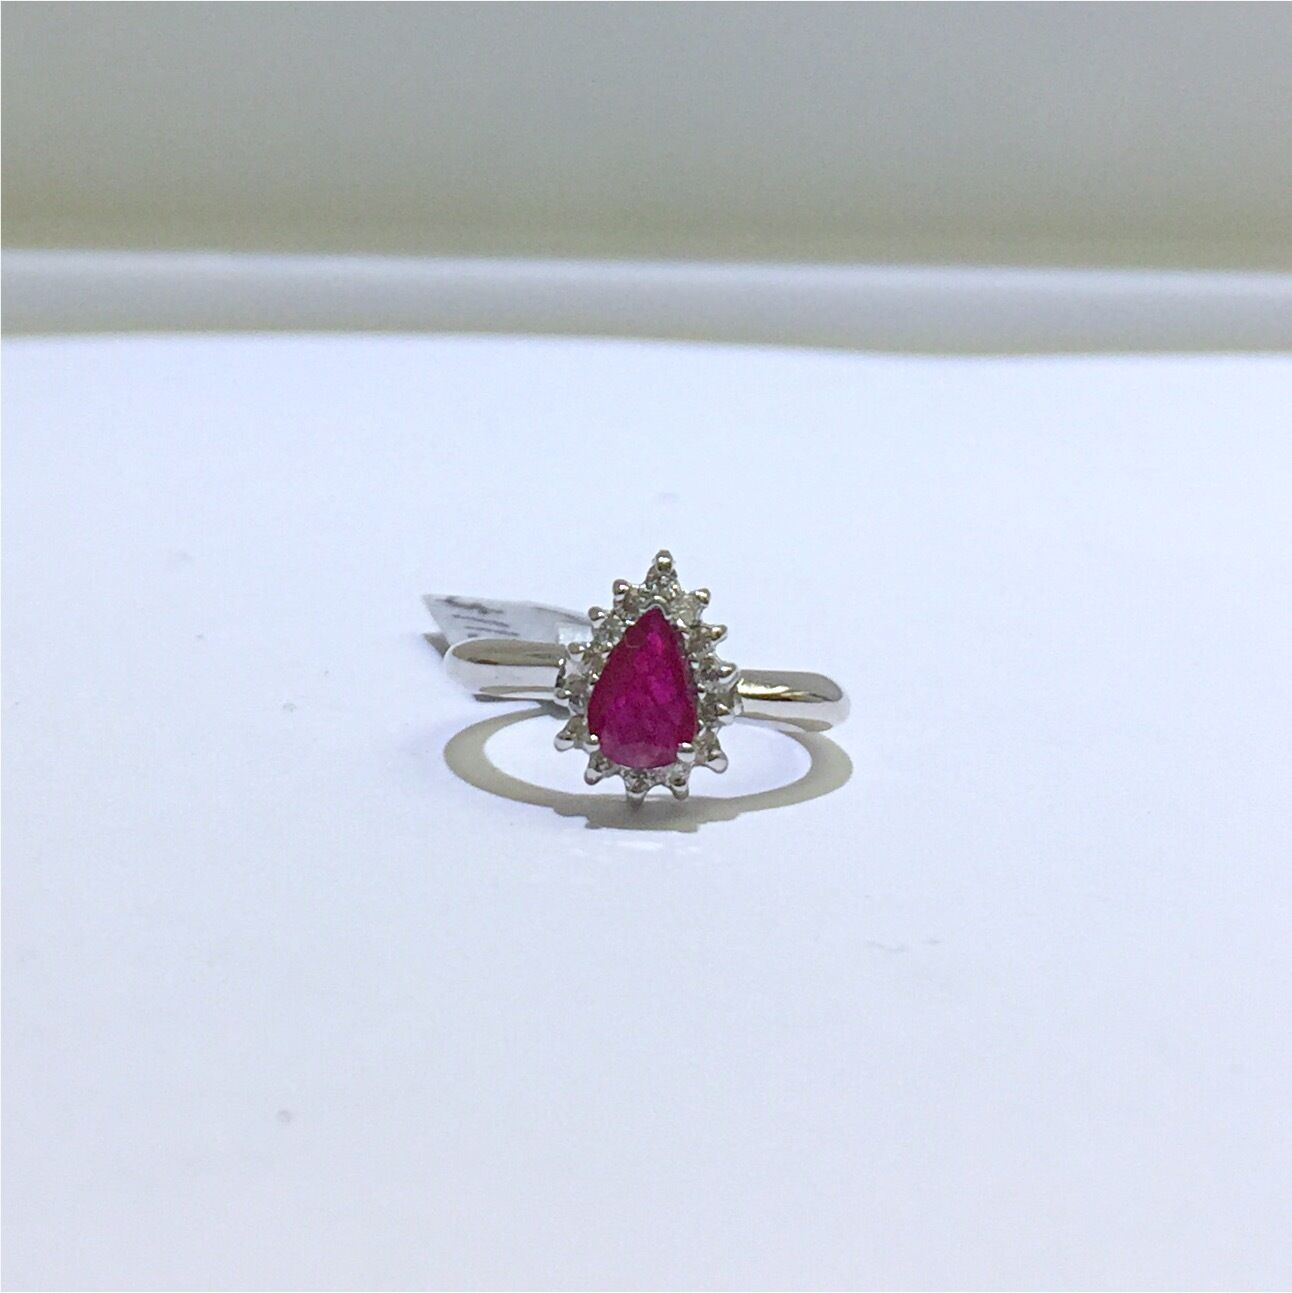 18K White gold genuine Ruby and Diamond Ring. Size 4.5